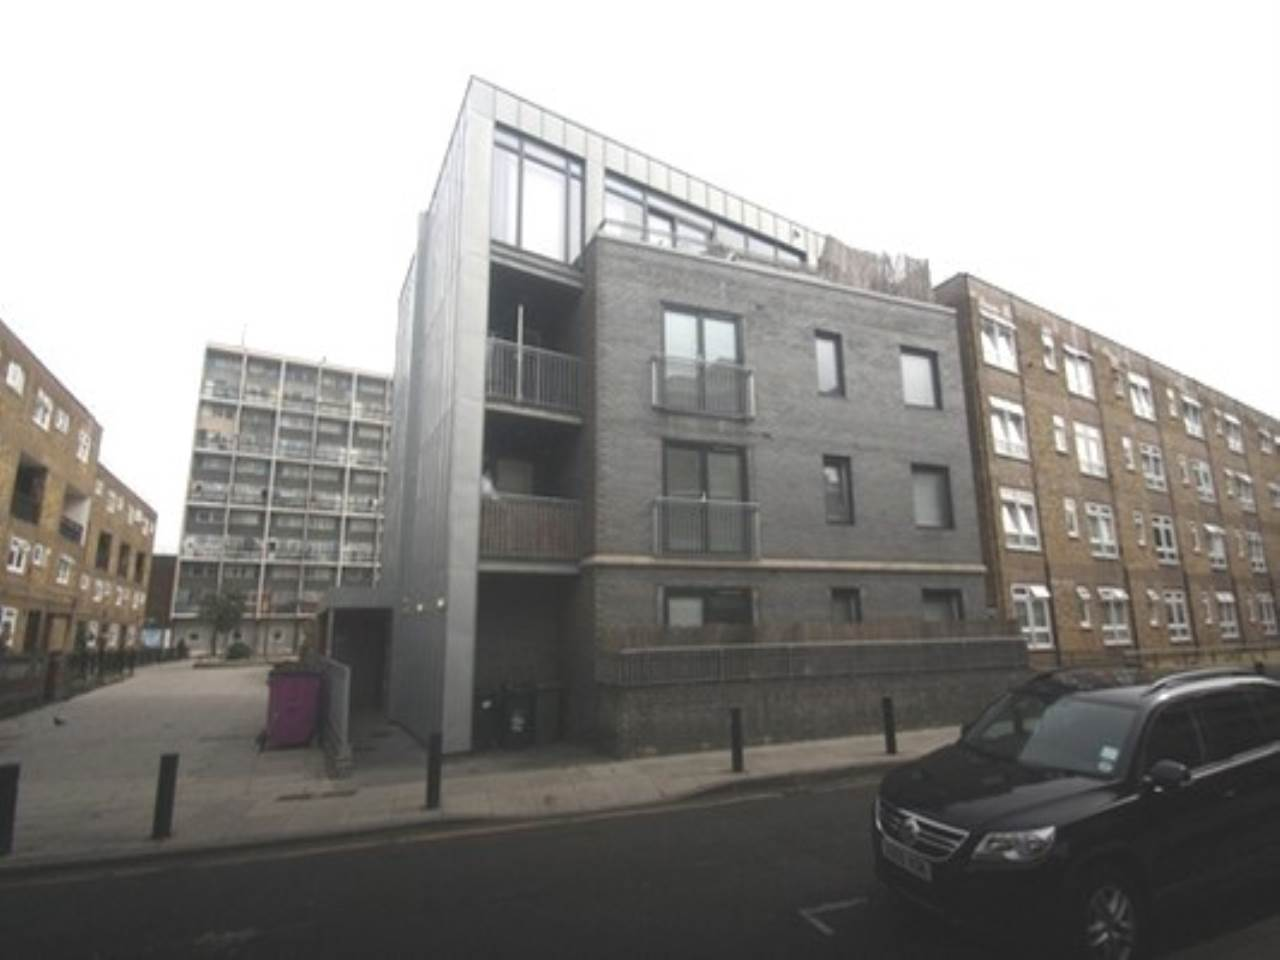 3 bed flat to rent in Whitechapel, E1